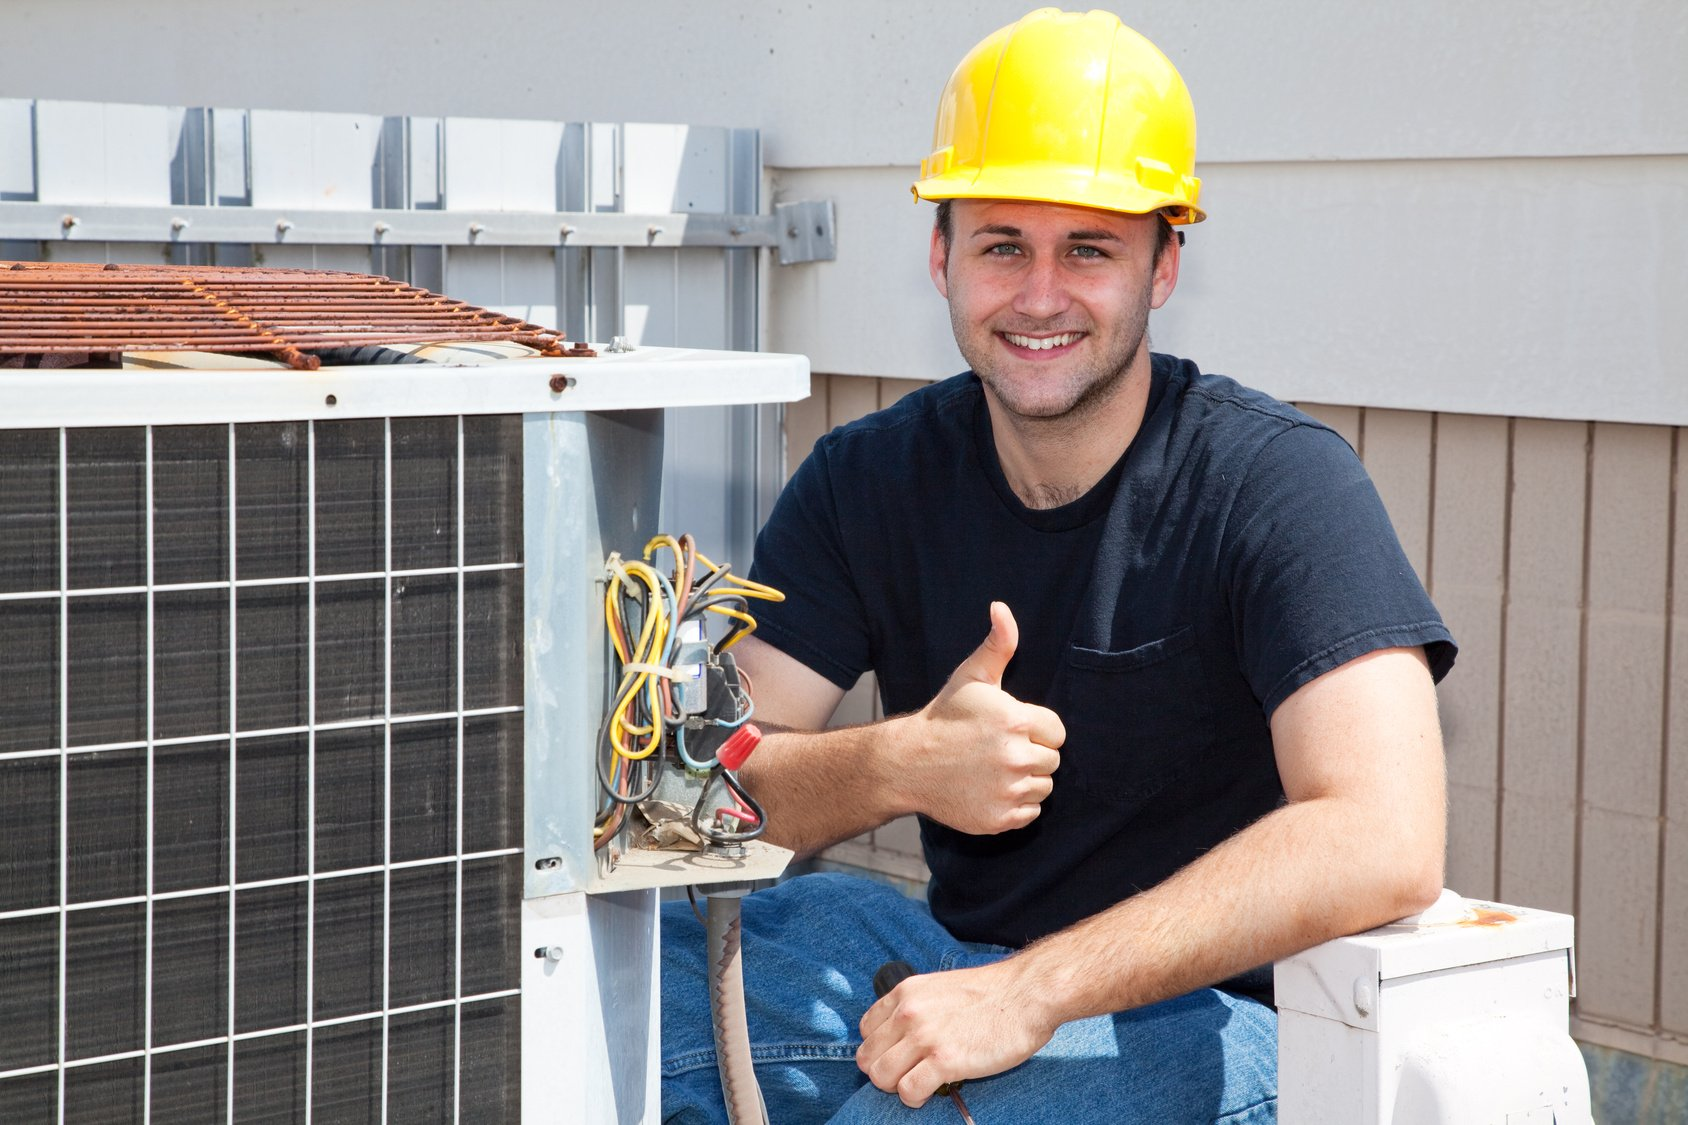 How To Spot A Professional Hvac Technician And Services